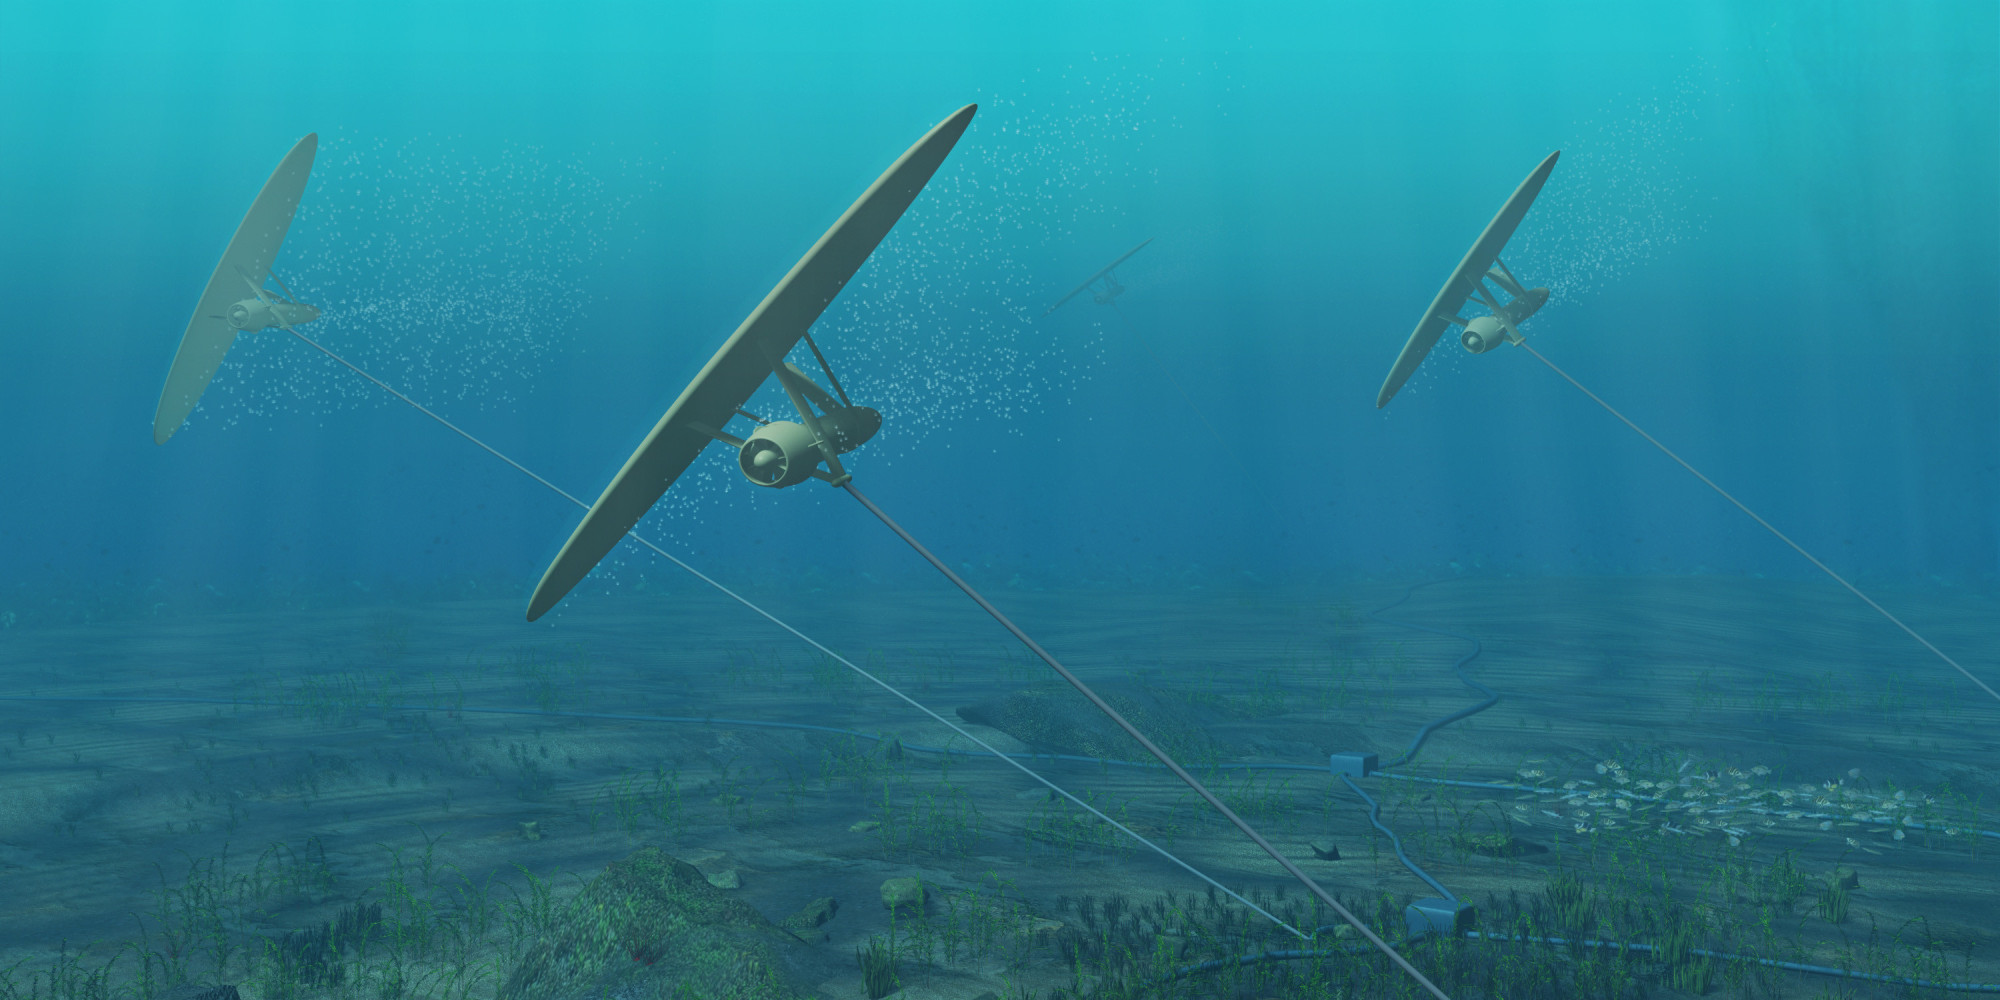 Underwater Kite Power Generators Could Harness Ocean